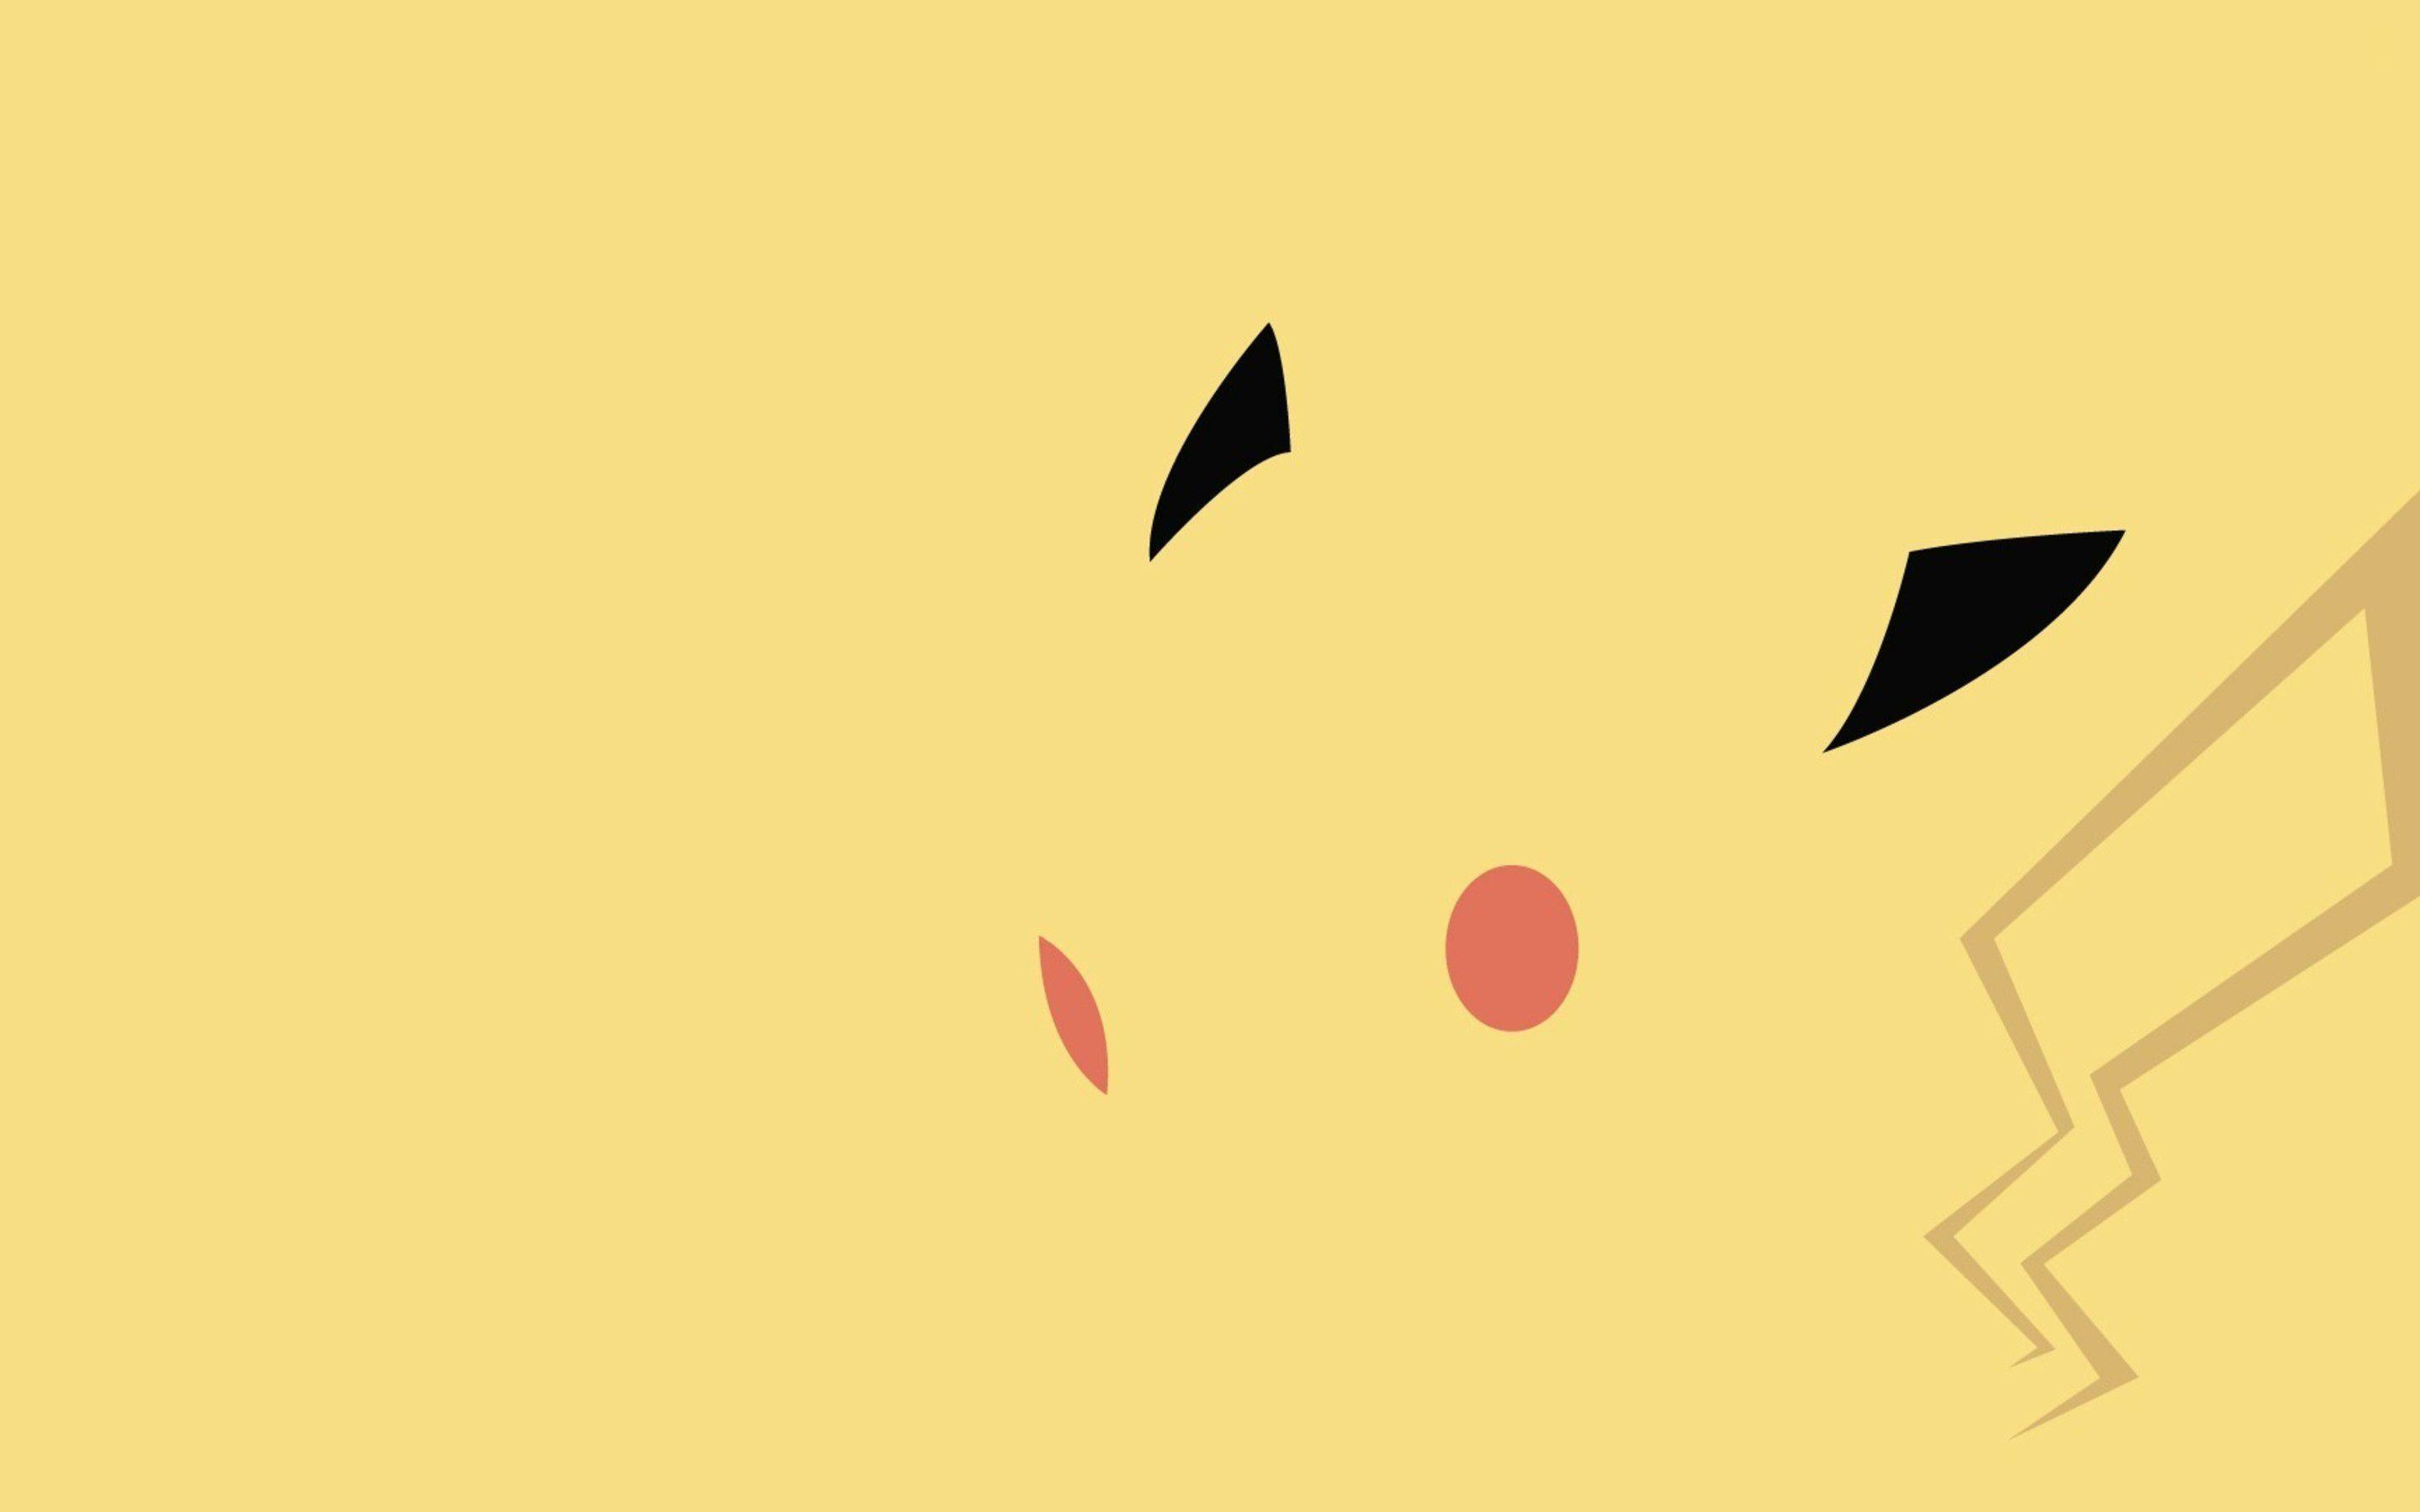 pikachu pokemon wallpaper - photo #24